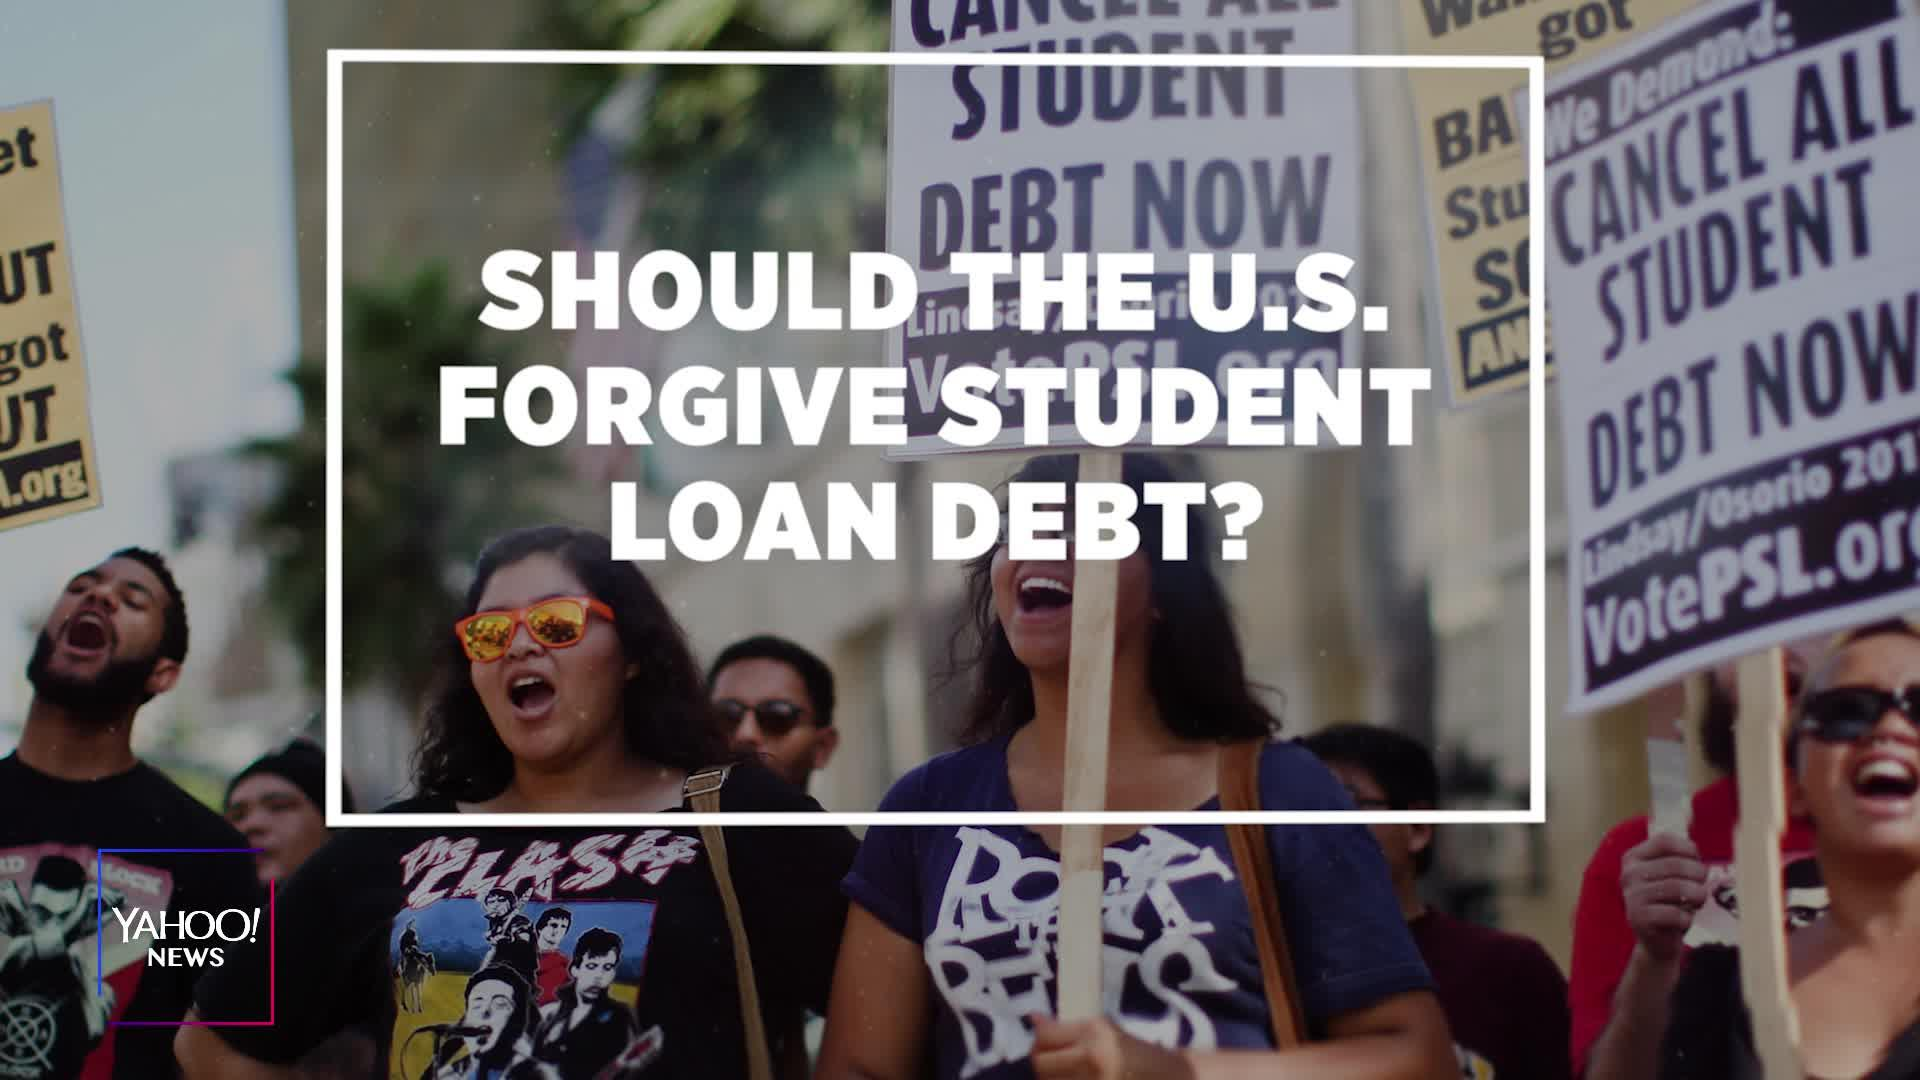 Should The U.S. Forgive Student Loan Debt? [Video]